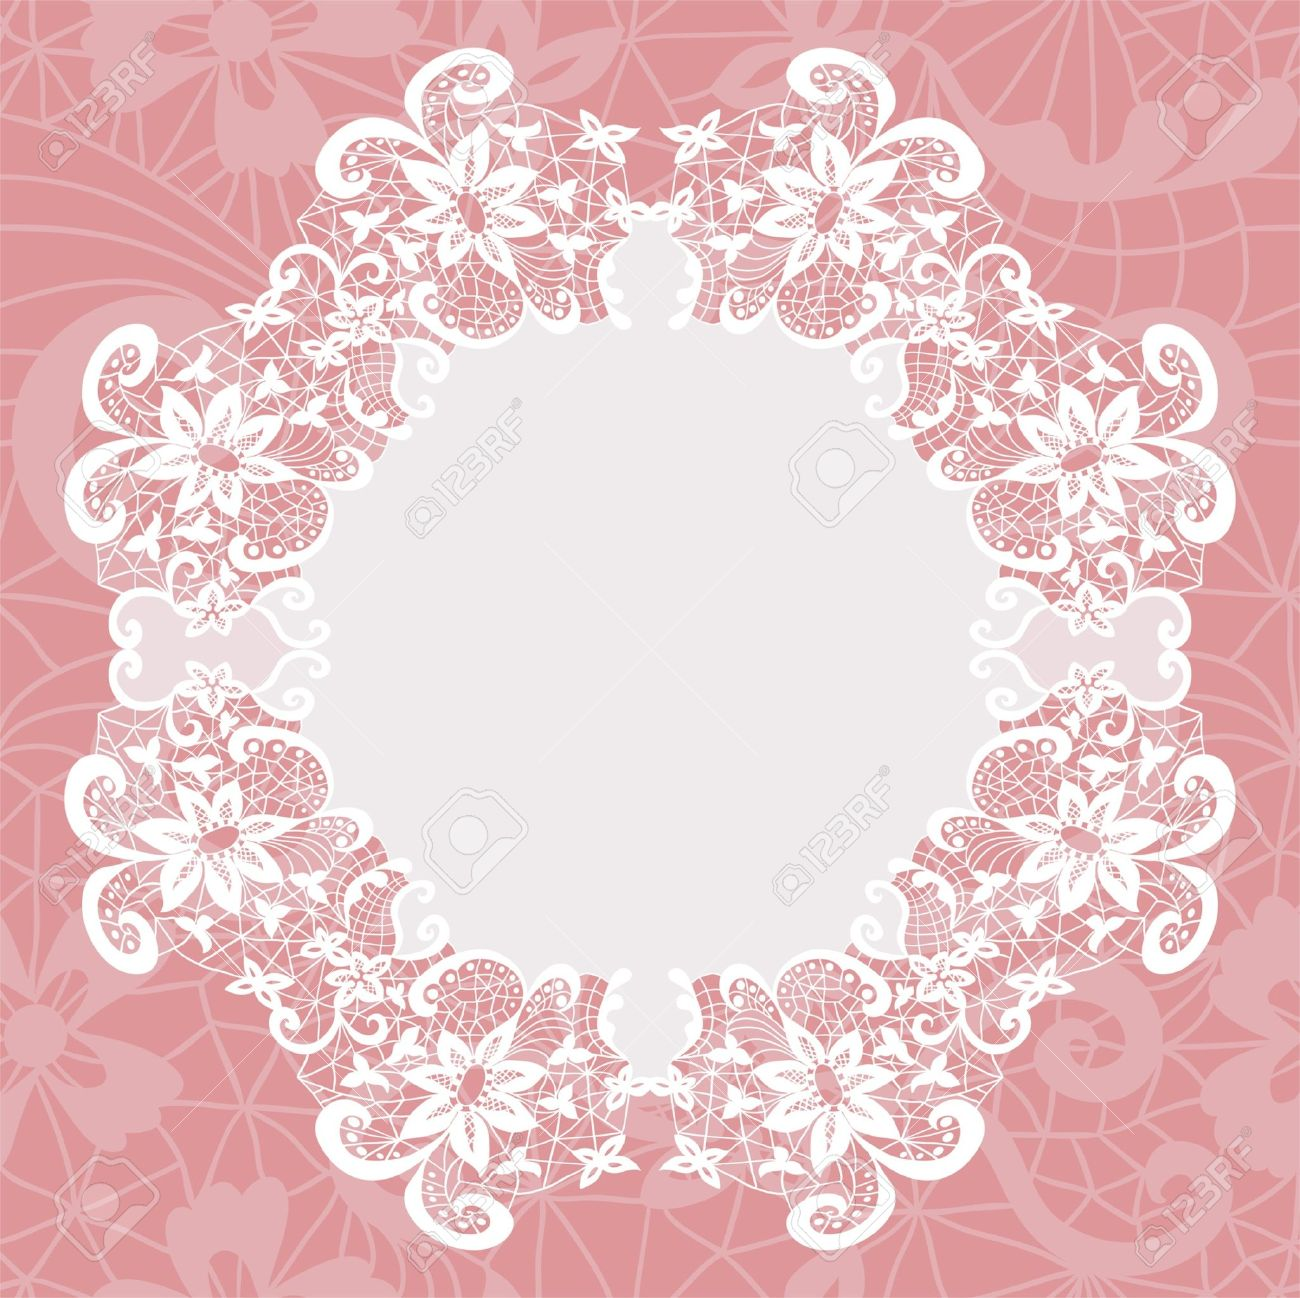 Elegant doily on lace gentle background for scrapbooks Stock Vector - 21604570